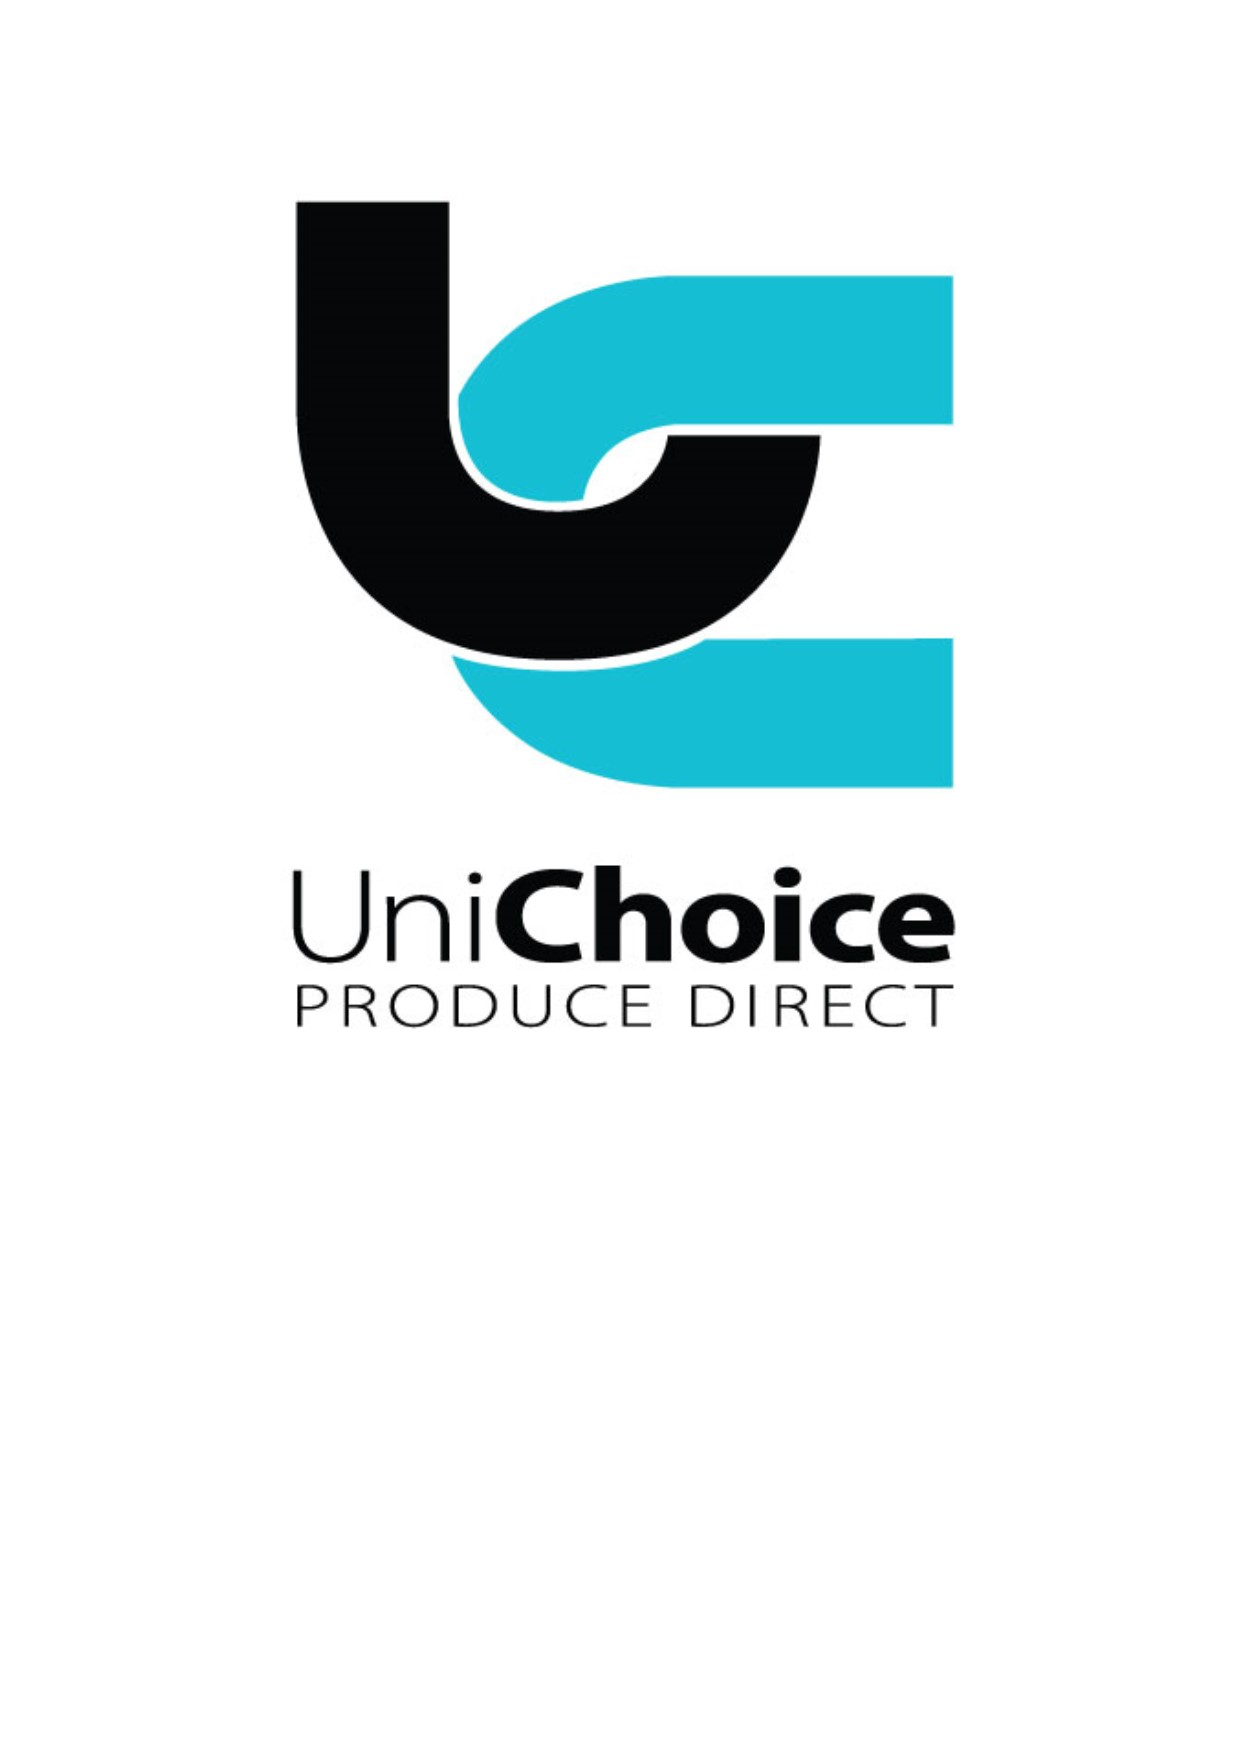 UniChoice Blue